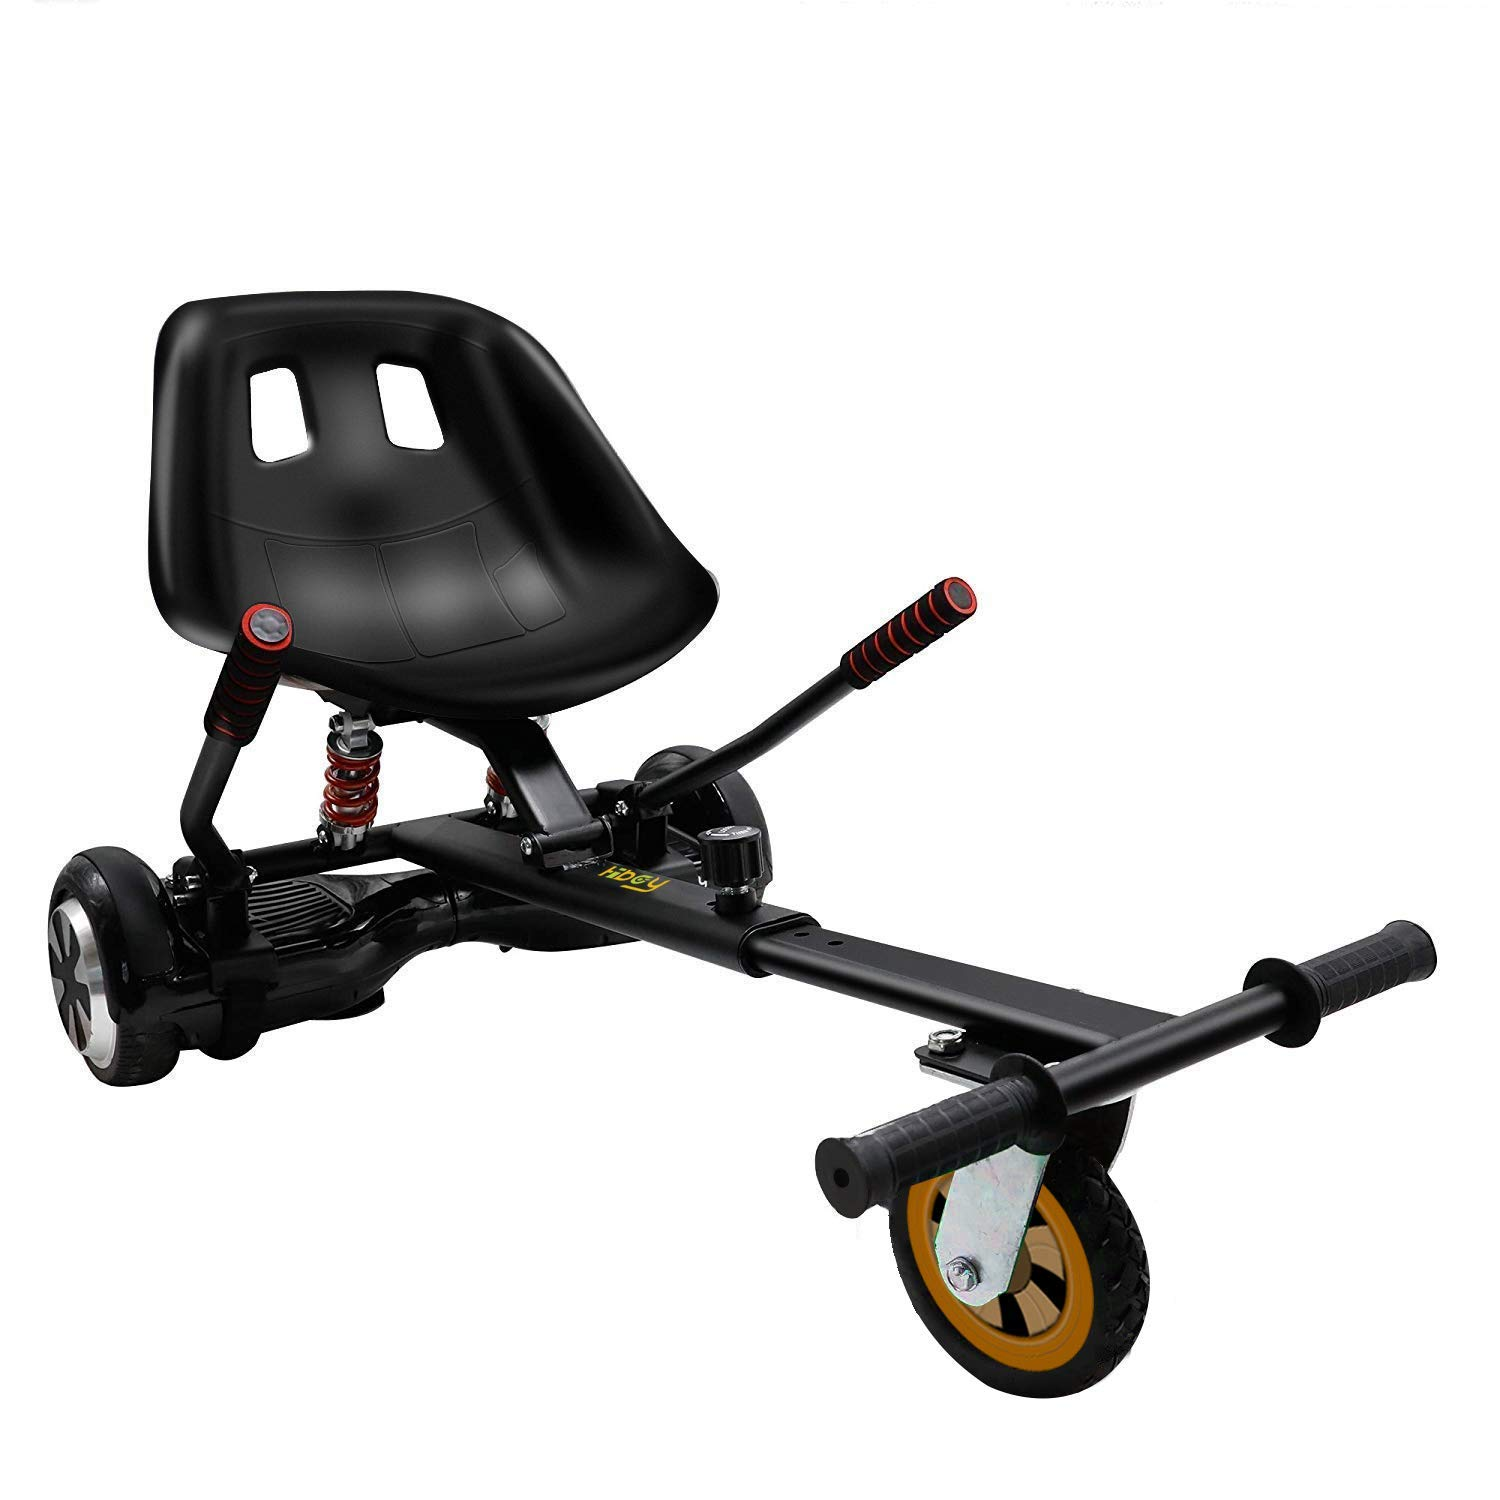 Hiboy HC-02 Hoverboard Seat Attachment with Rear Suspension Go Kart Accessory for 6.5'' 8'' 10'' Two Wheel Self Balancing Scooter by Hiboy